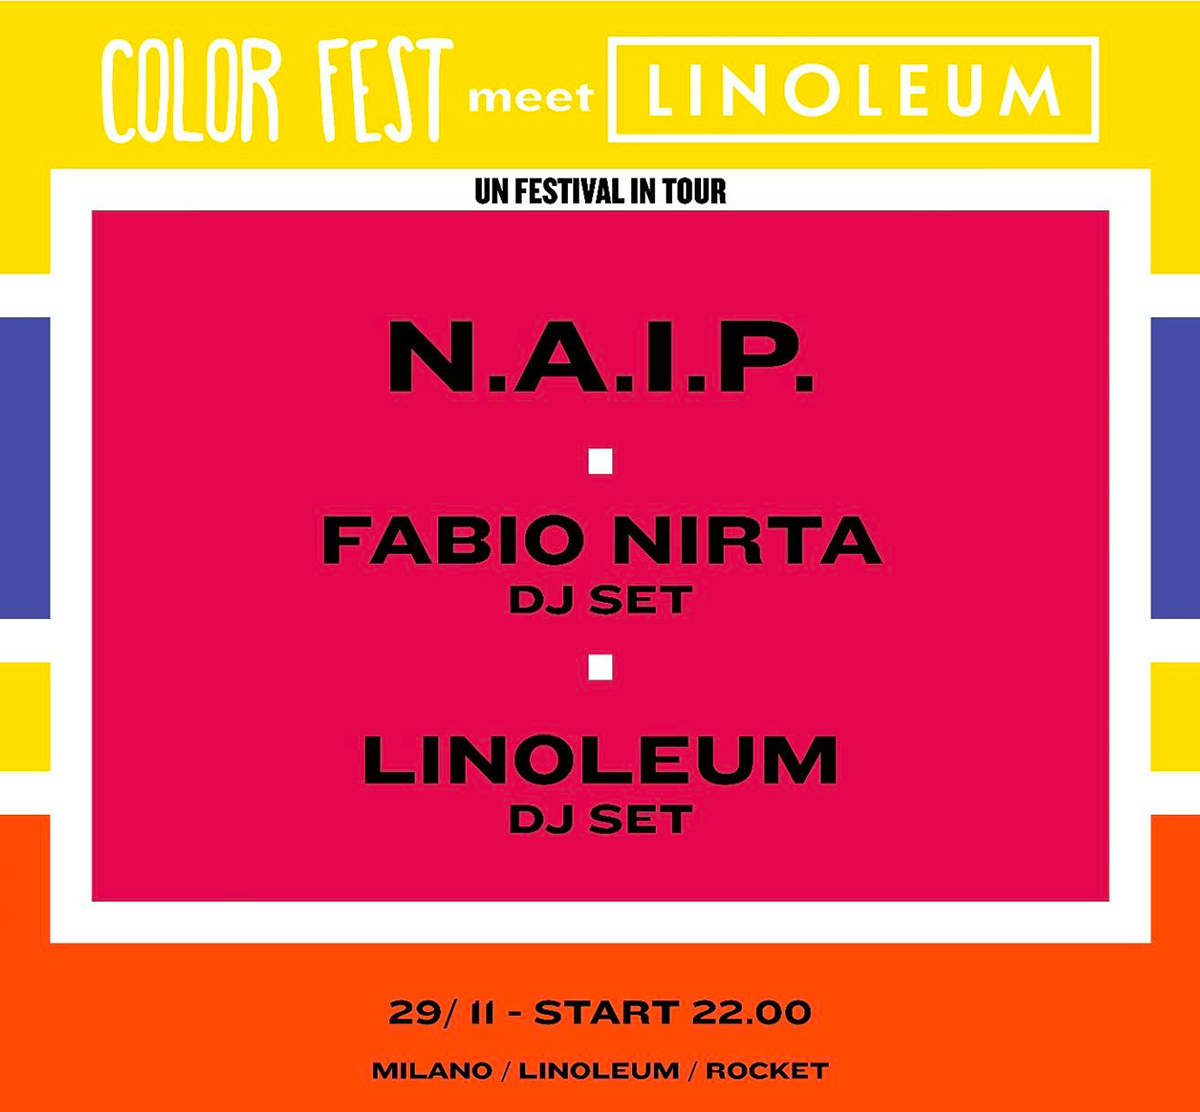 milano color fest